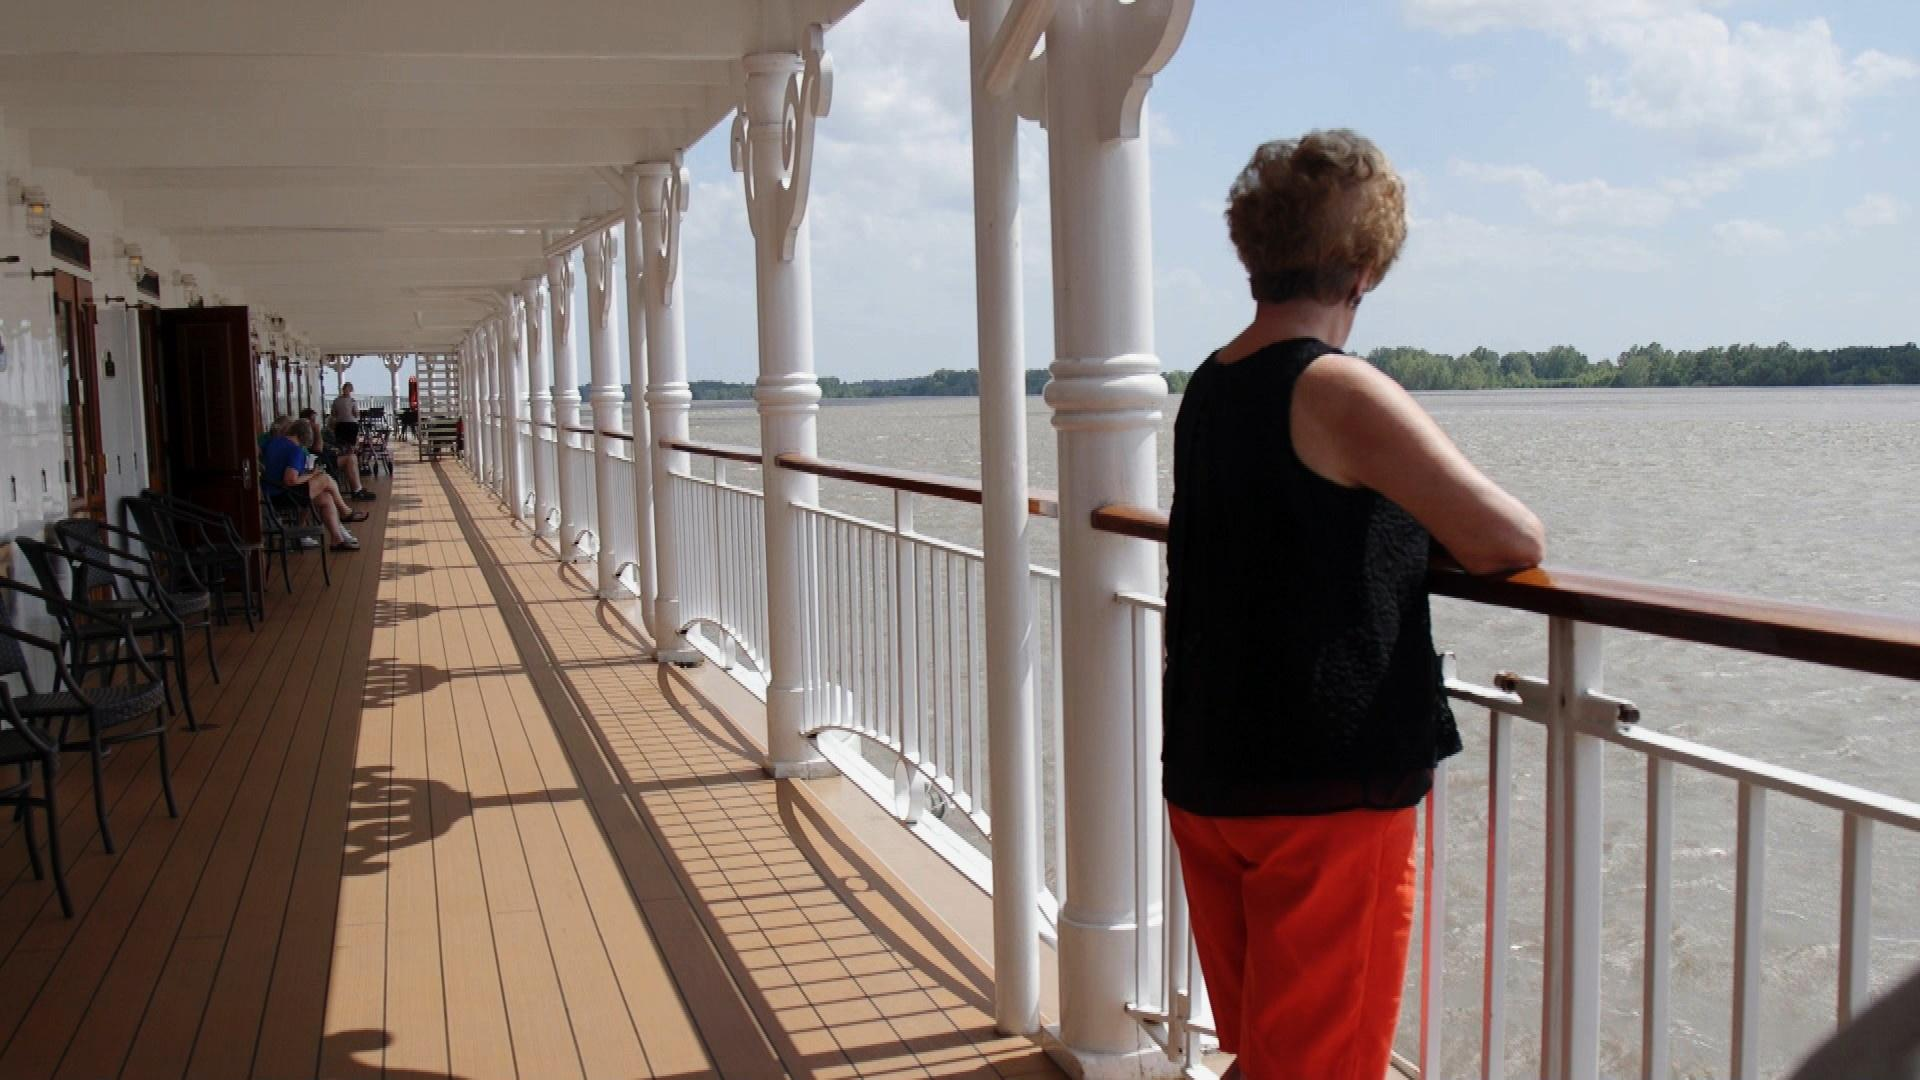 woman on deck of boar looking out to the waters of the Mississippi River.